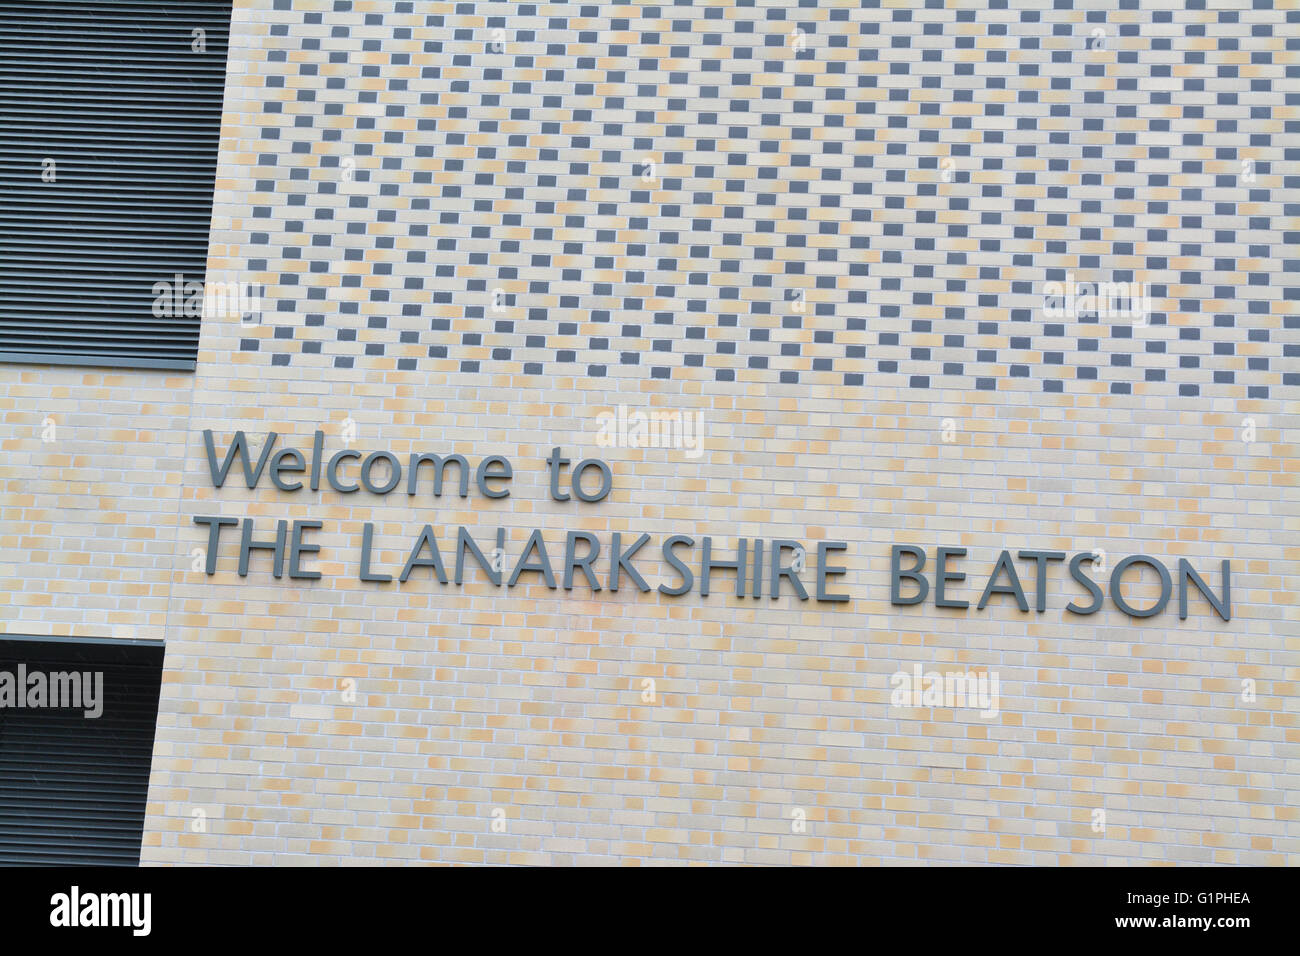 The Lanarkshire Beatson Satellite Radiotherapy Centre, Monklands General Hospital, Airdrie, Scotland, UK - Stock Image